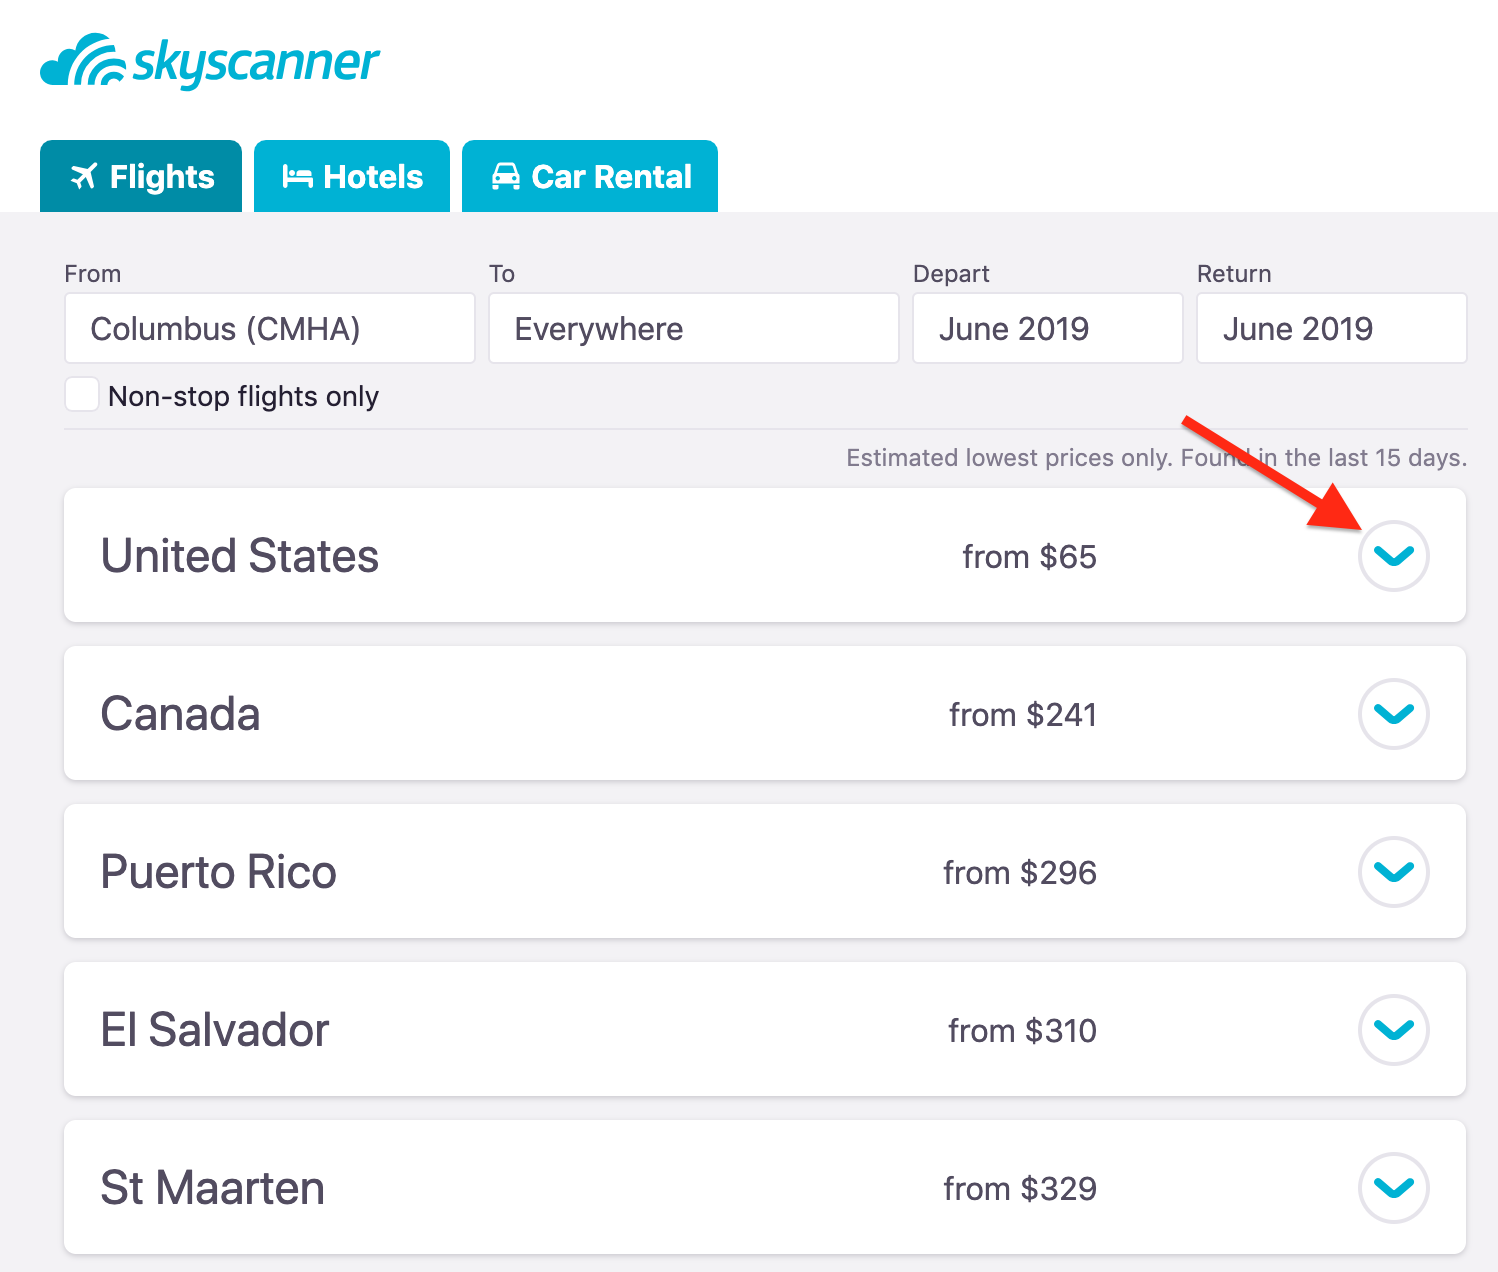 Rent Search Engines: Find Flights, Hotels & Car Rentals At Low